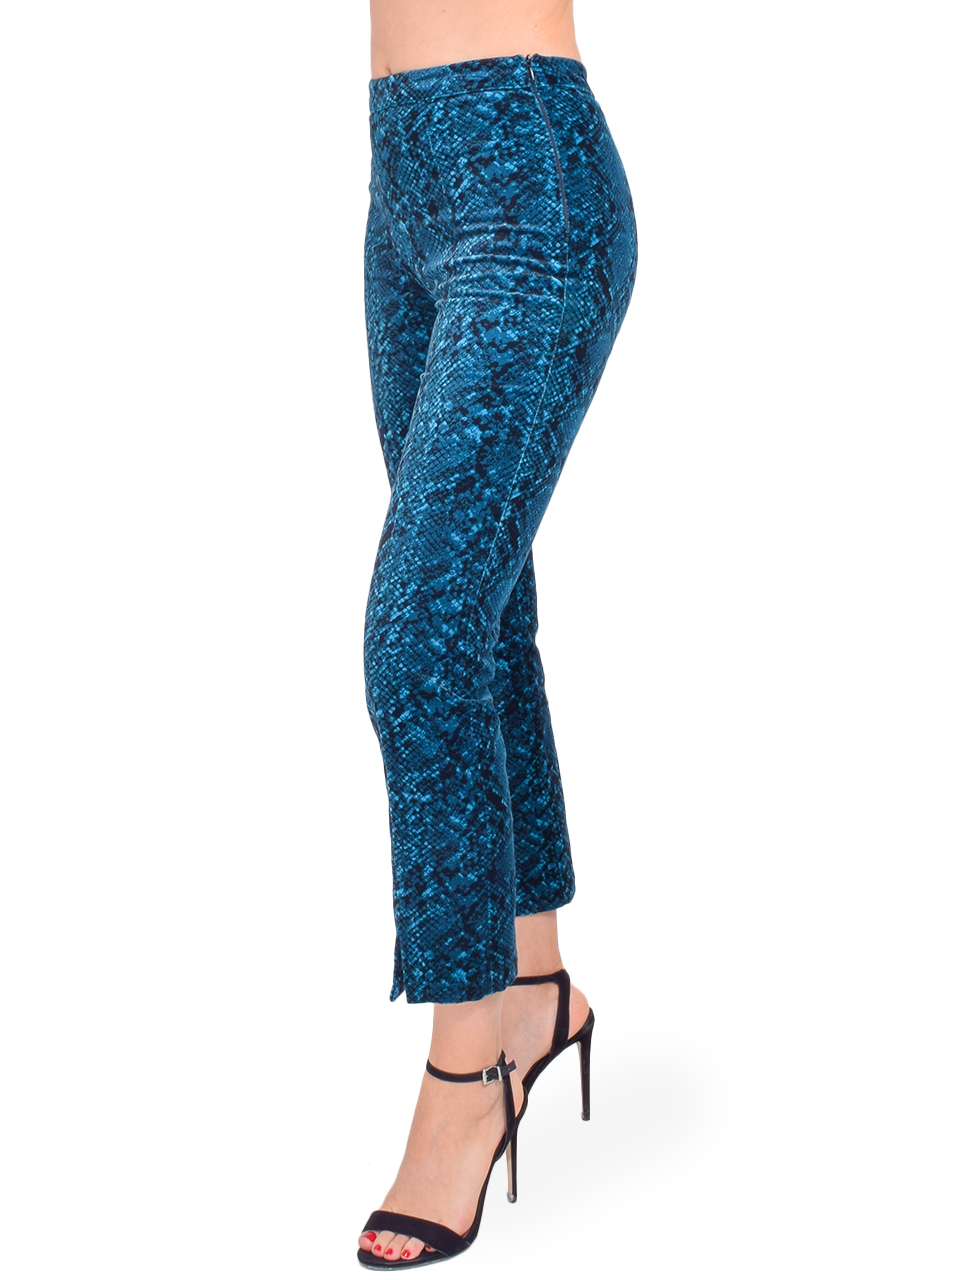 MISA Iris Pant in Teal Snake Side View